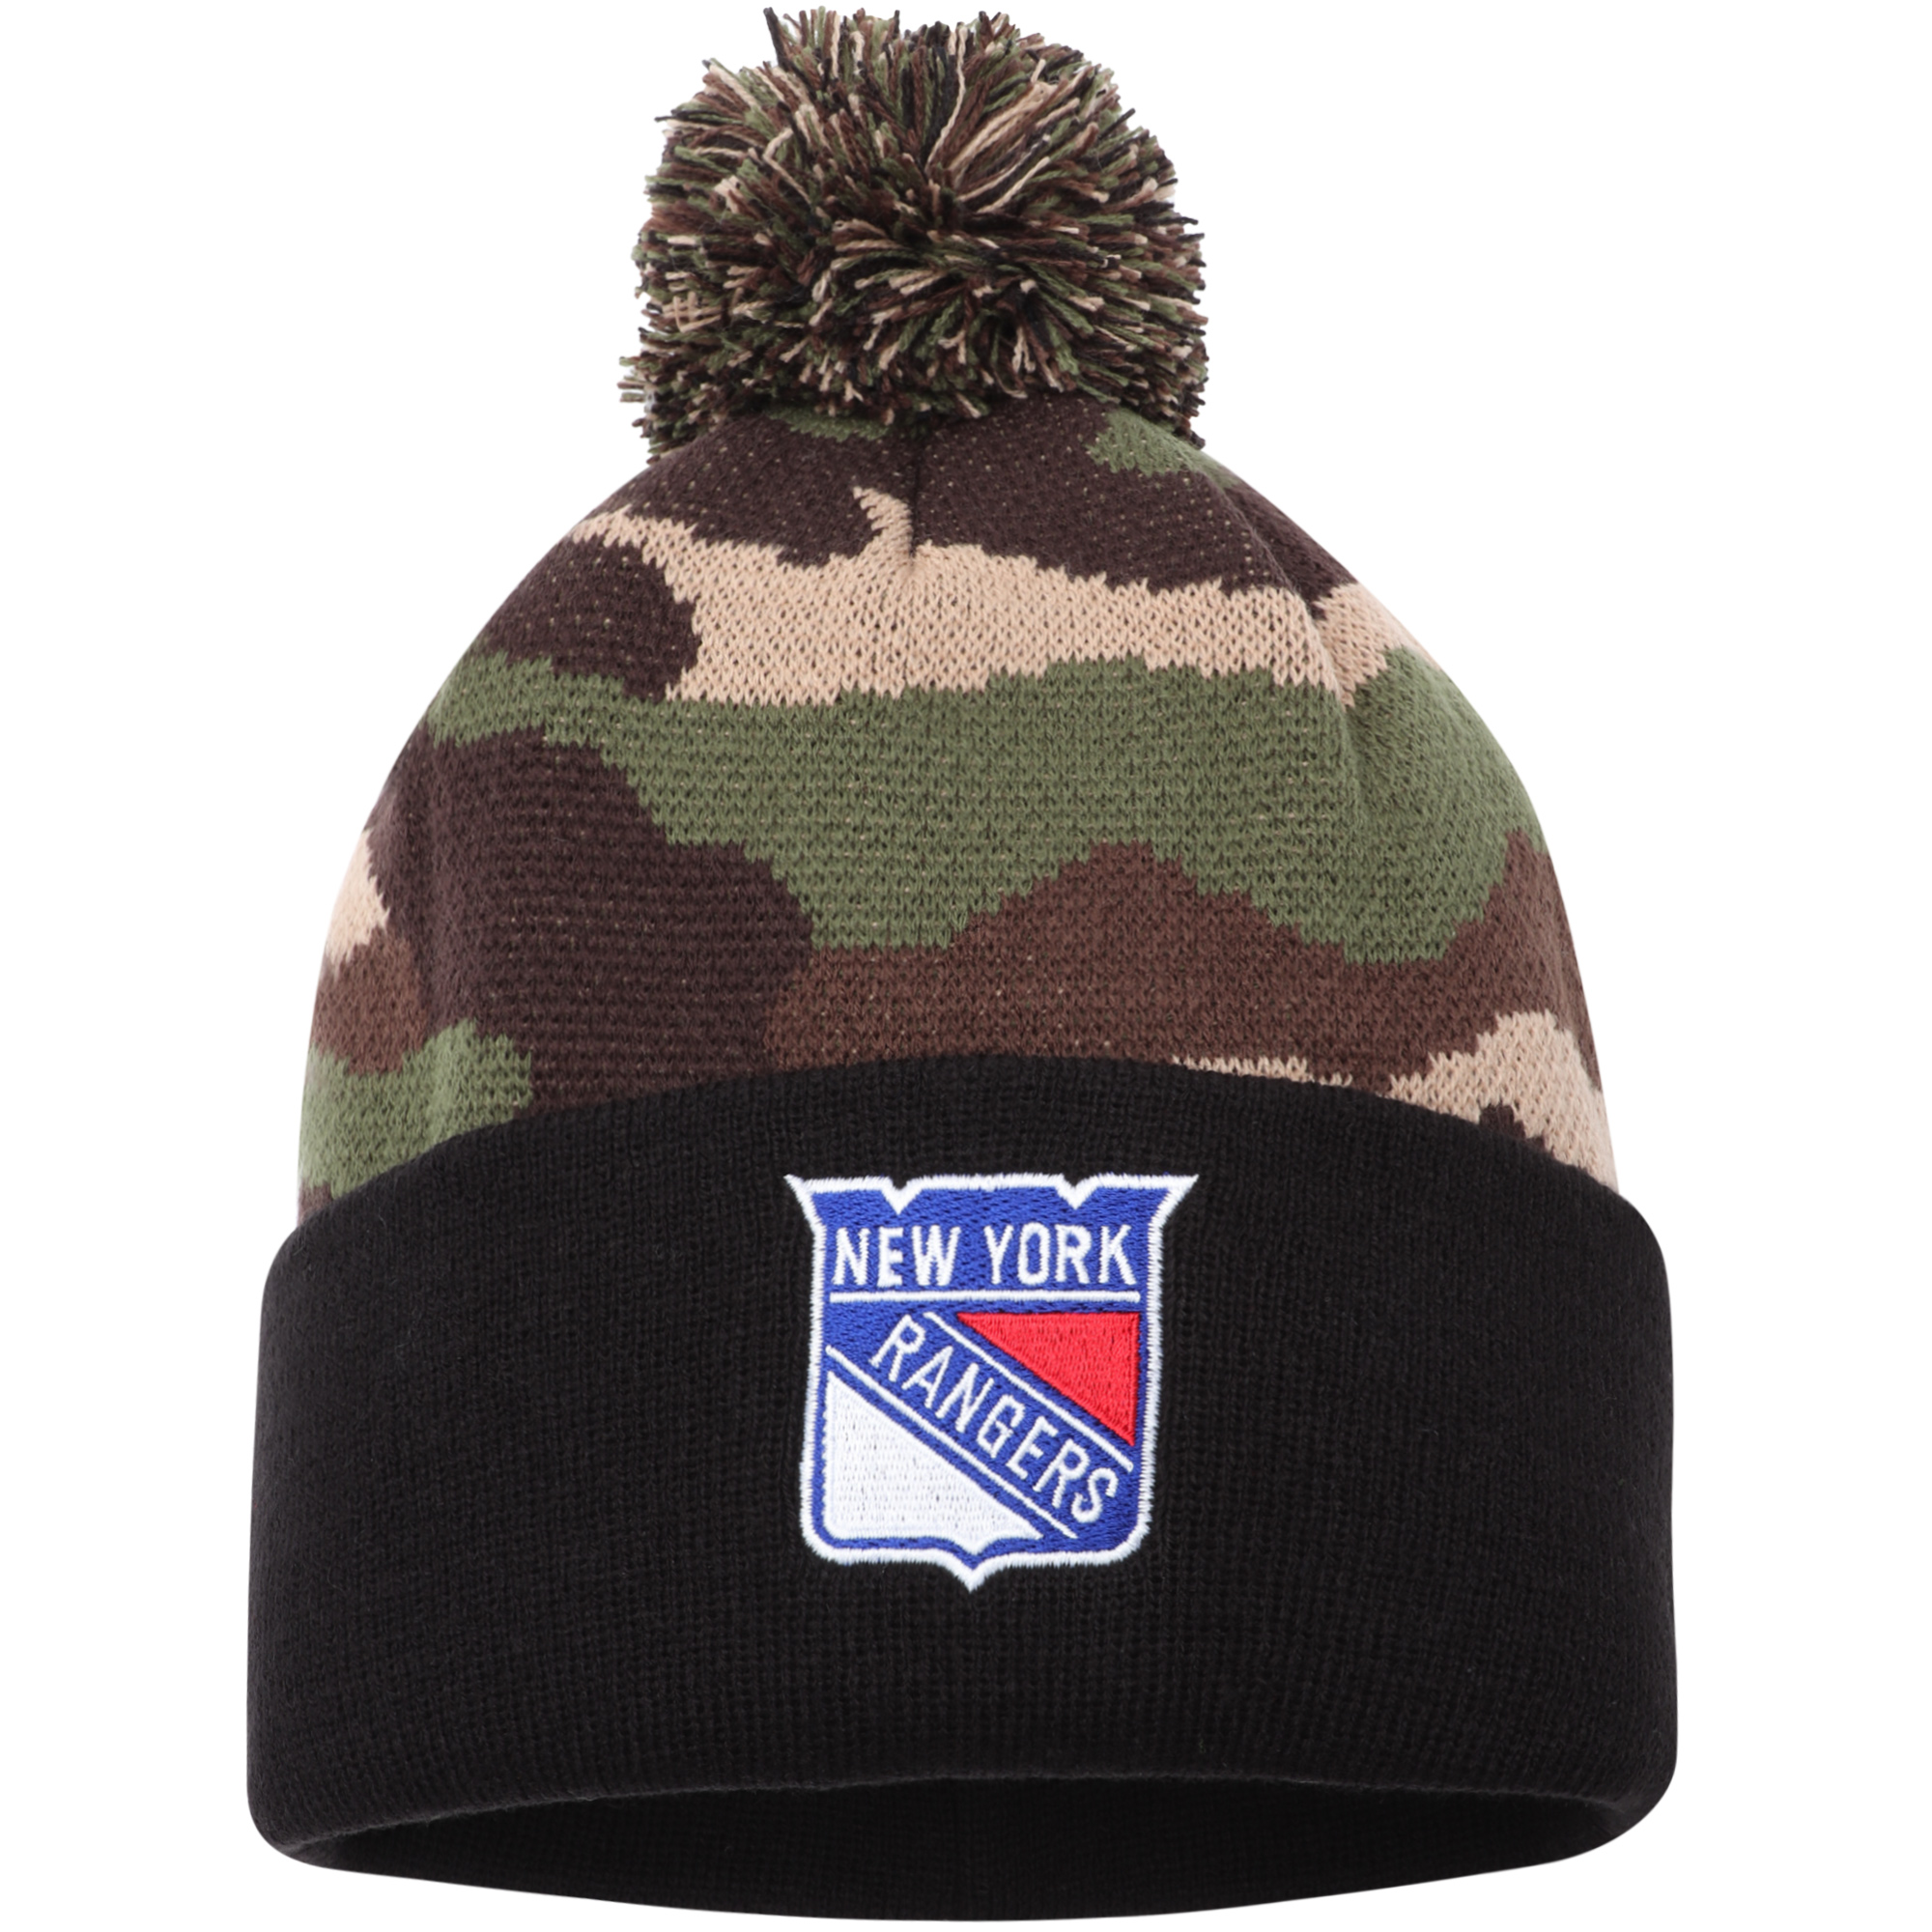 New York Rangers American Needle Cuffed Pom Knit Hat - Camo - OSFA